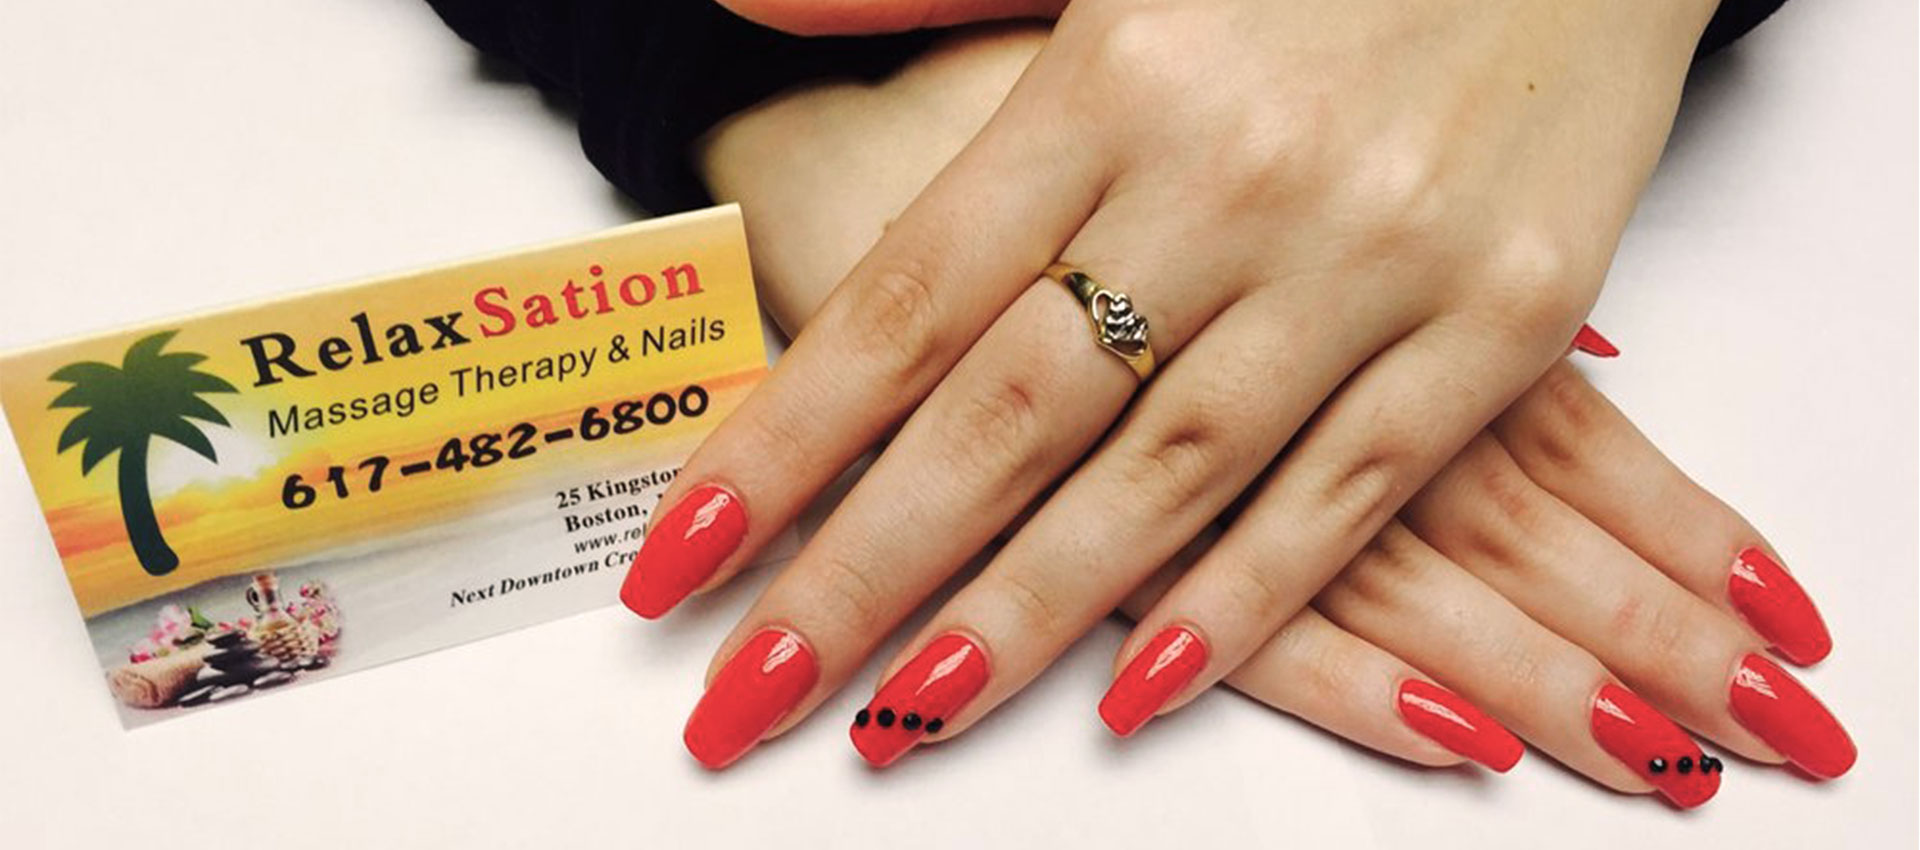 Nail Salon Prices Boston Massage Therapy Nail Salon And Day Spa